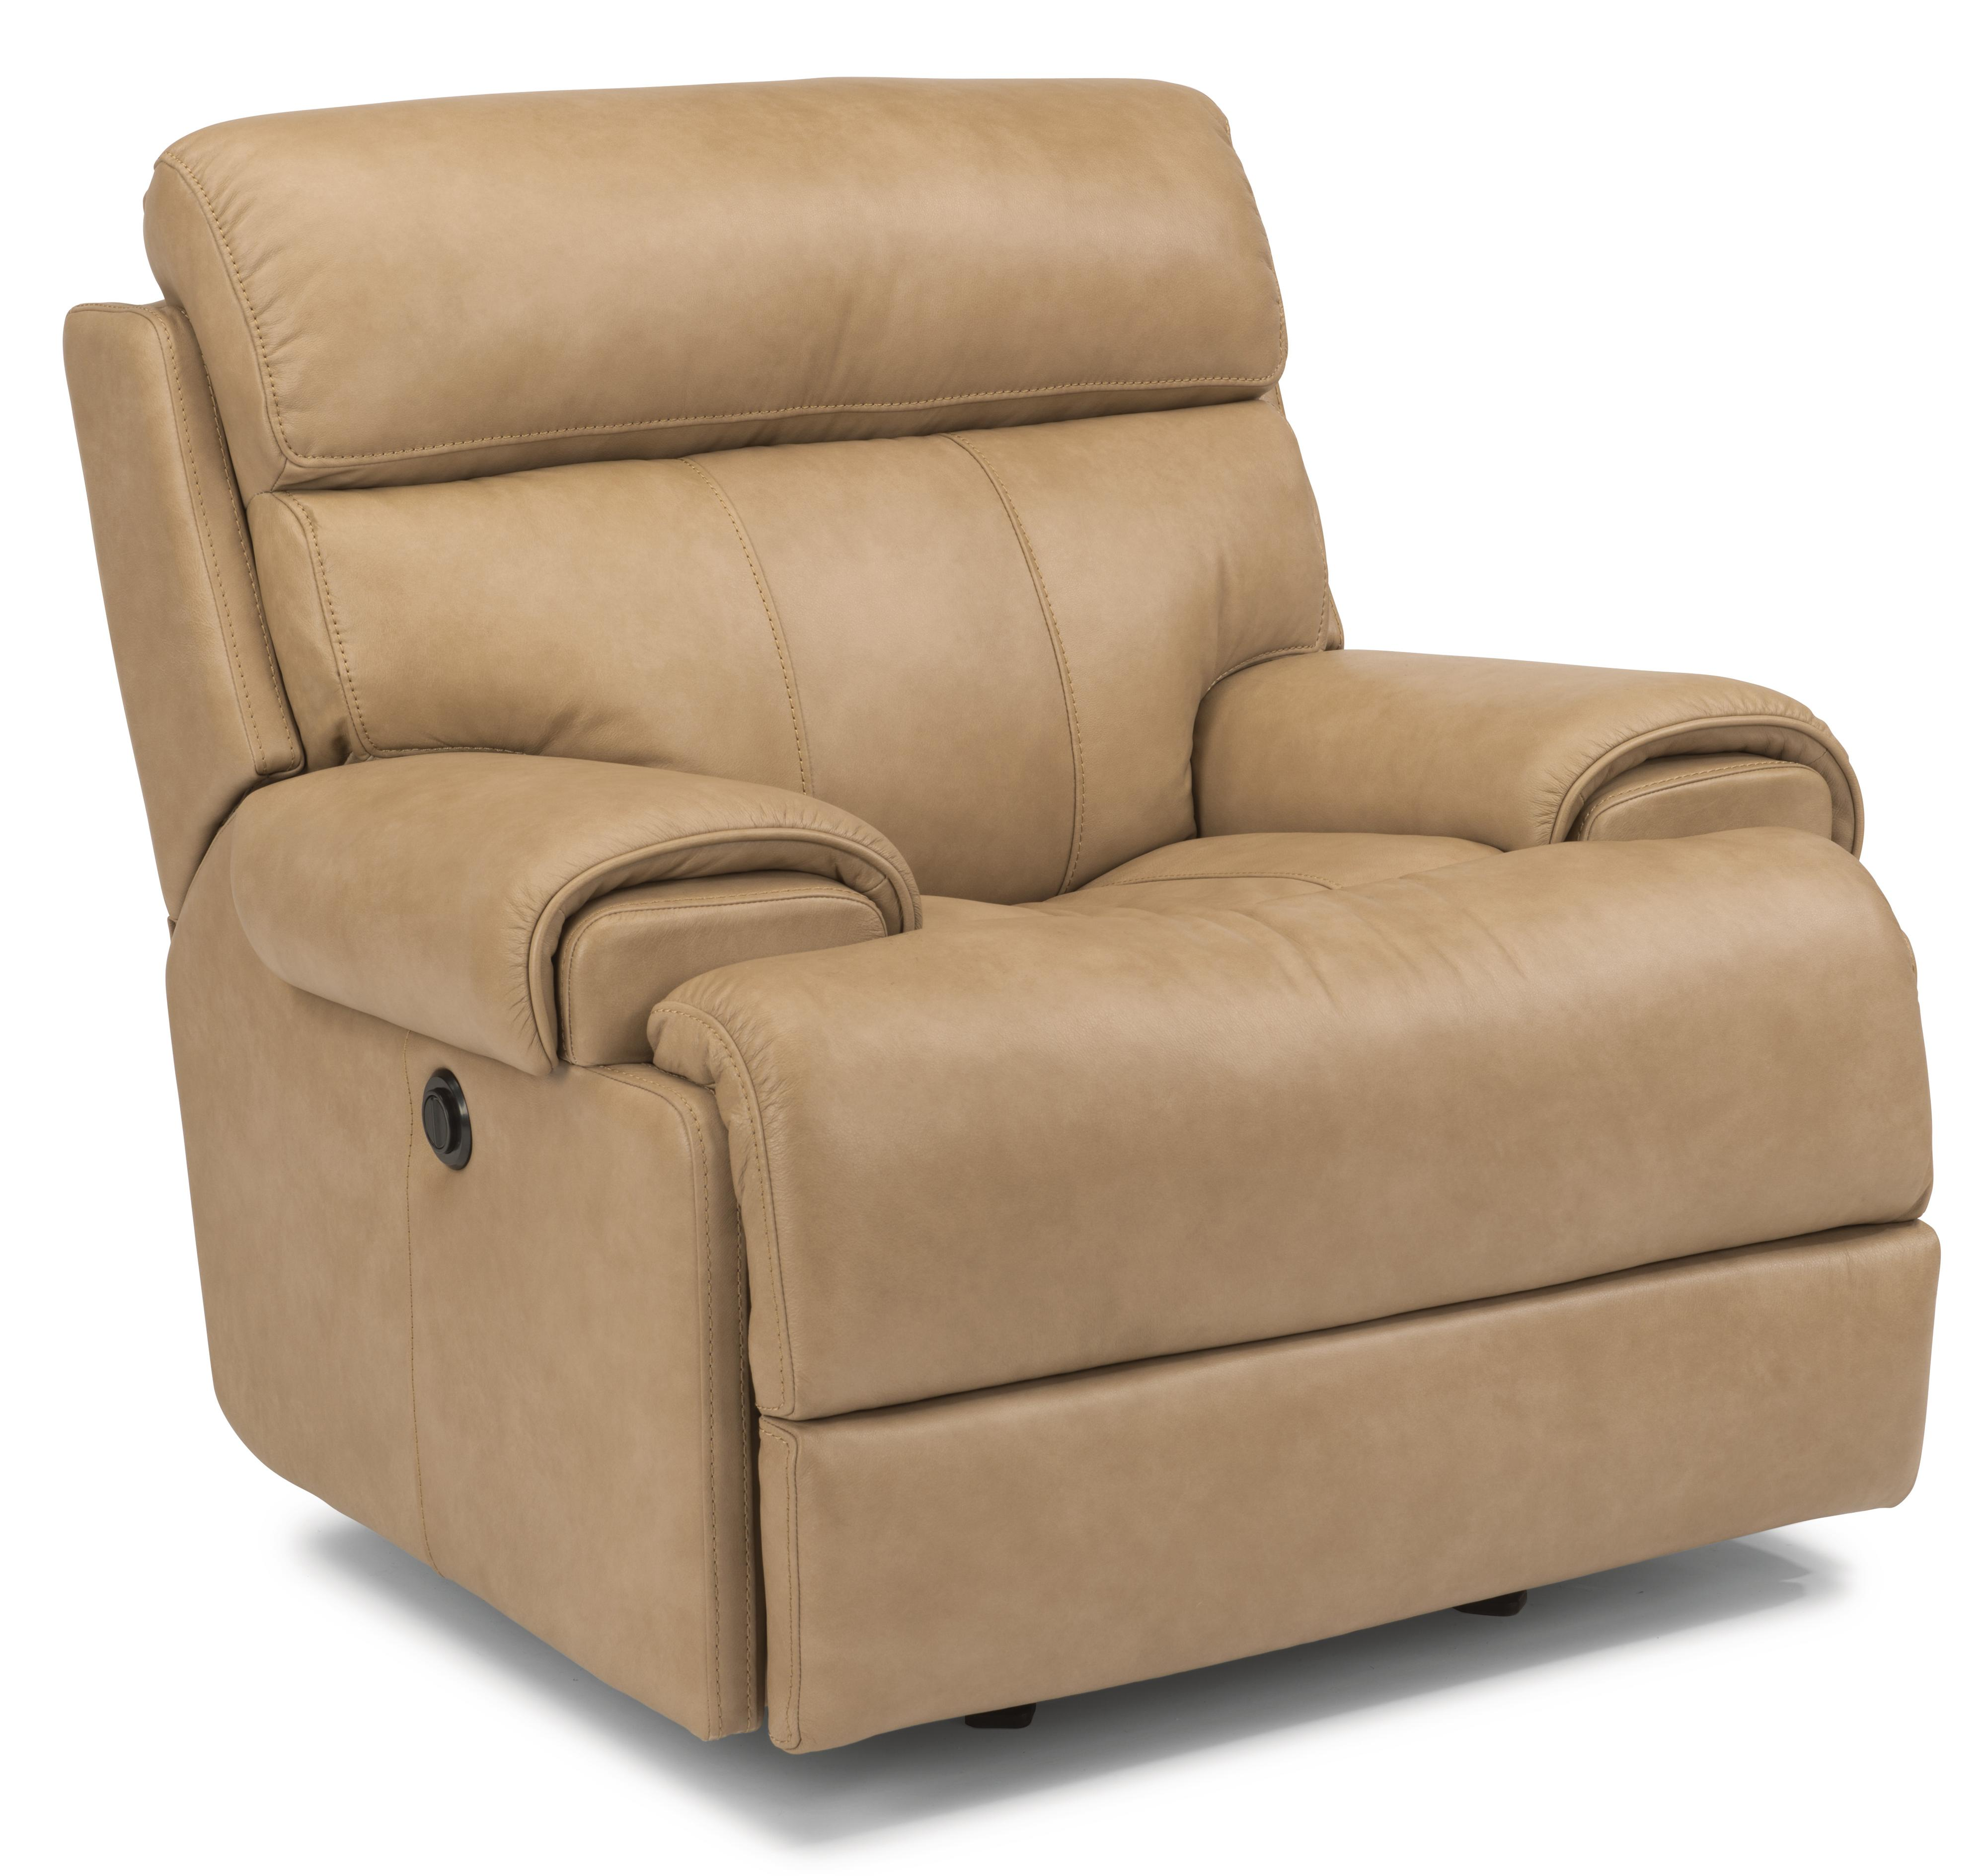 Flexsteel Latitudes-Margot Glider Recliner with Power - Item Number: 1441-54P-832-80